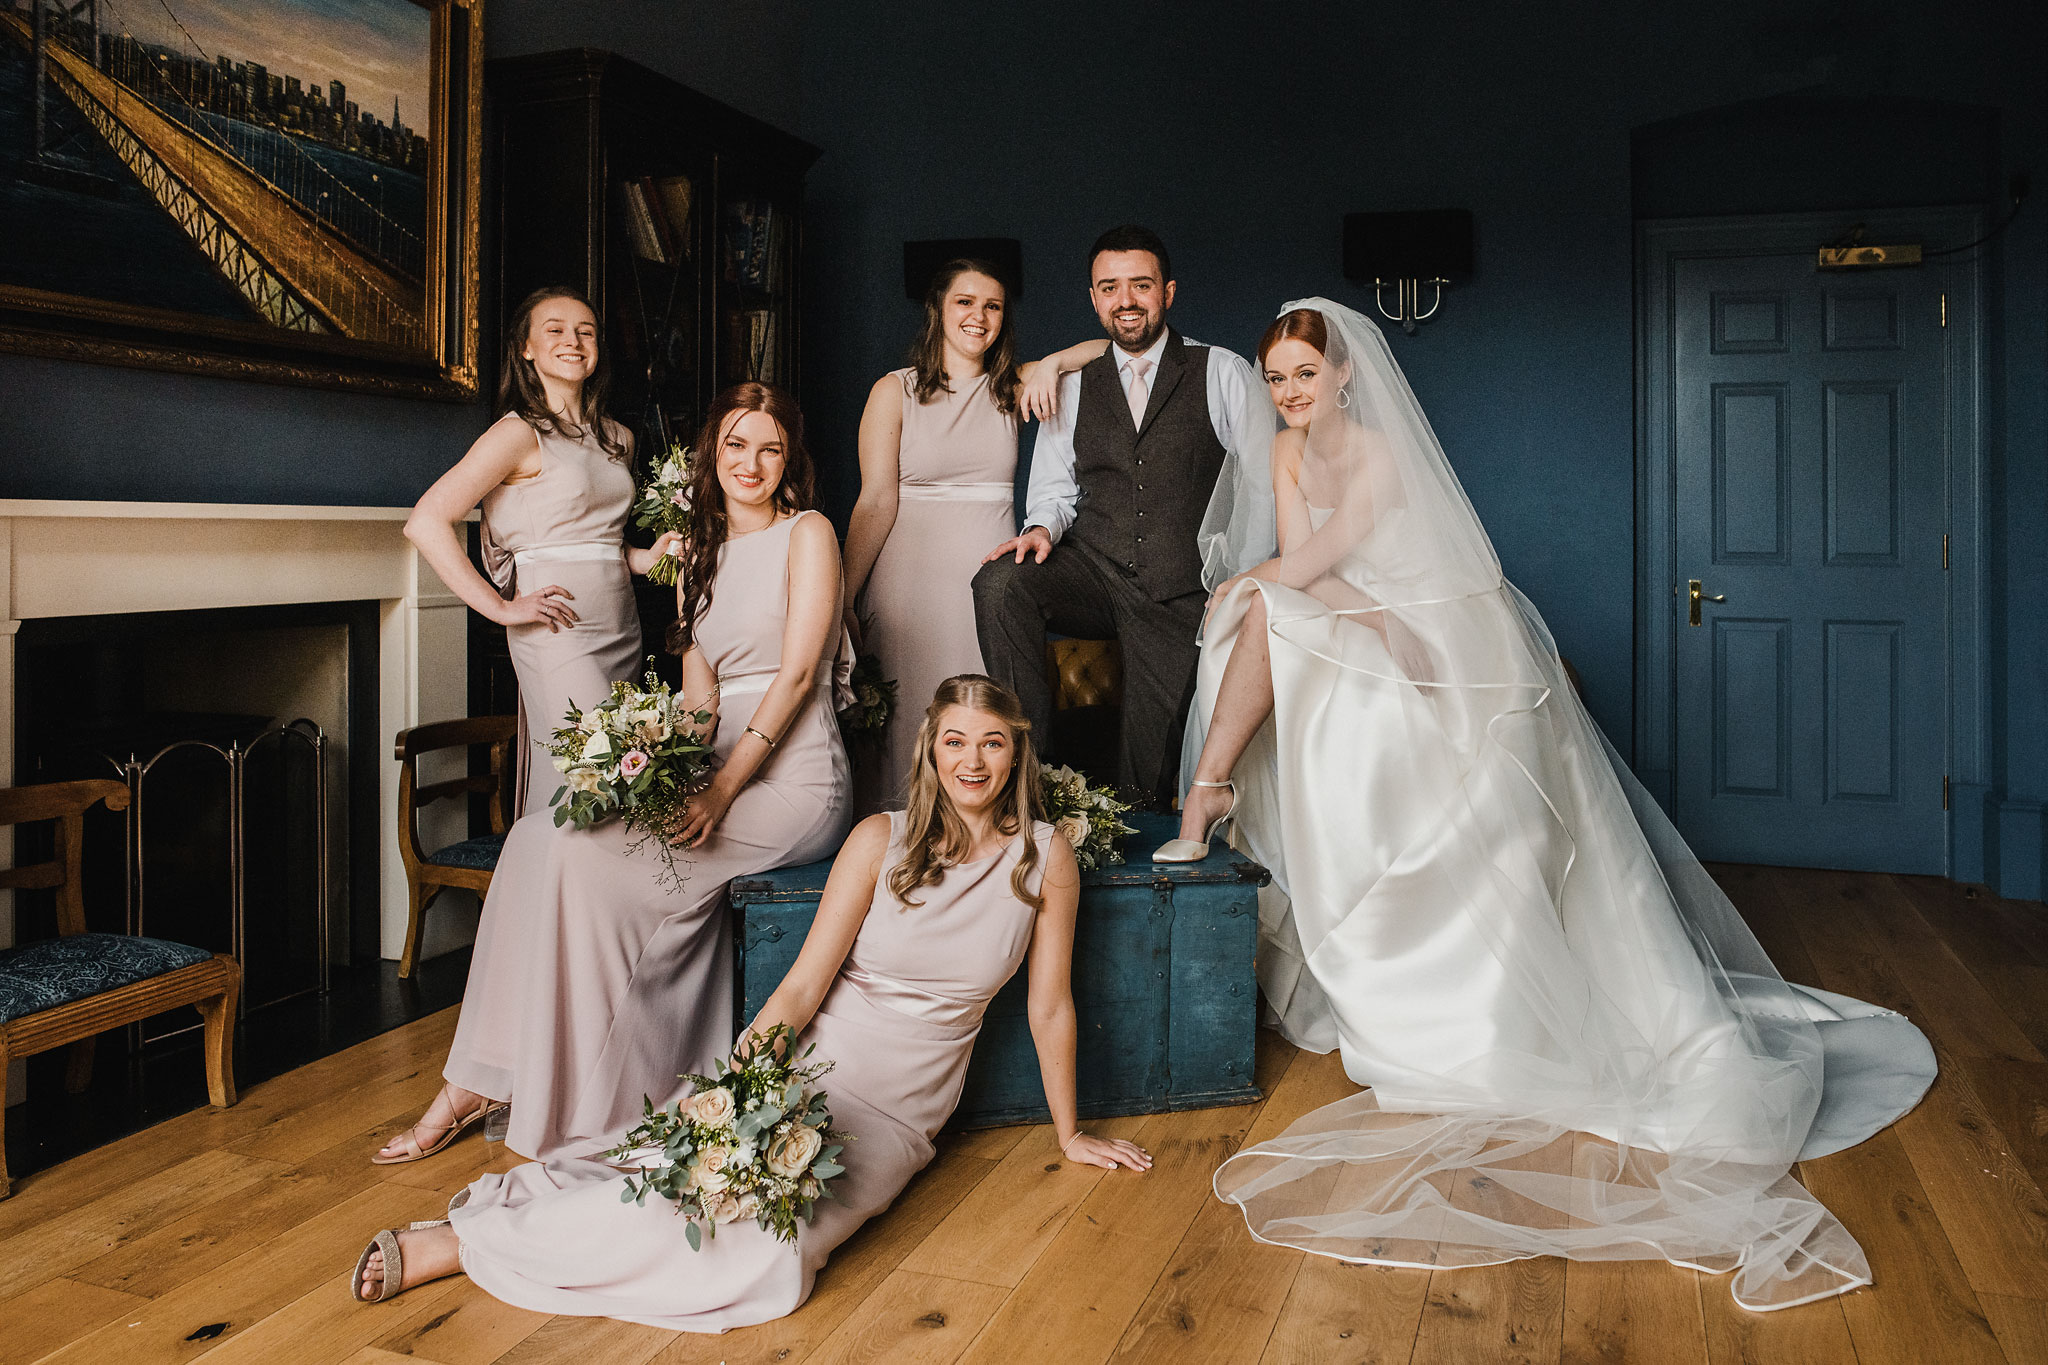 Couple with bridal party - photo by Rich Howman